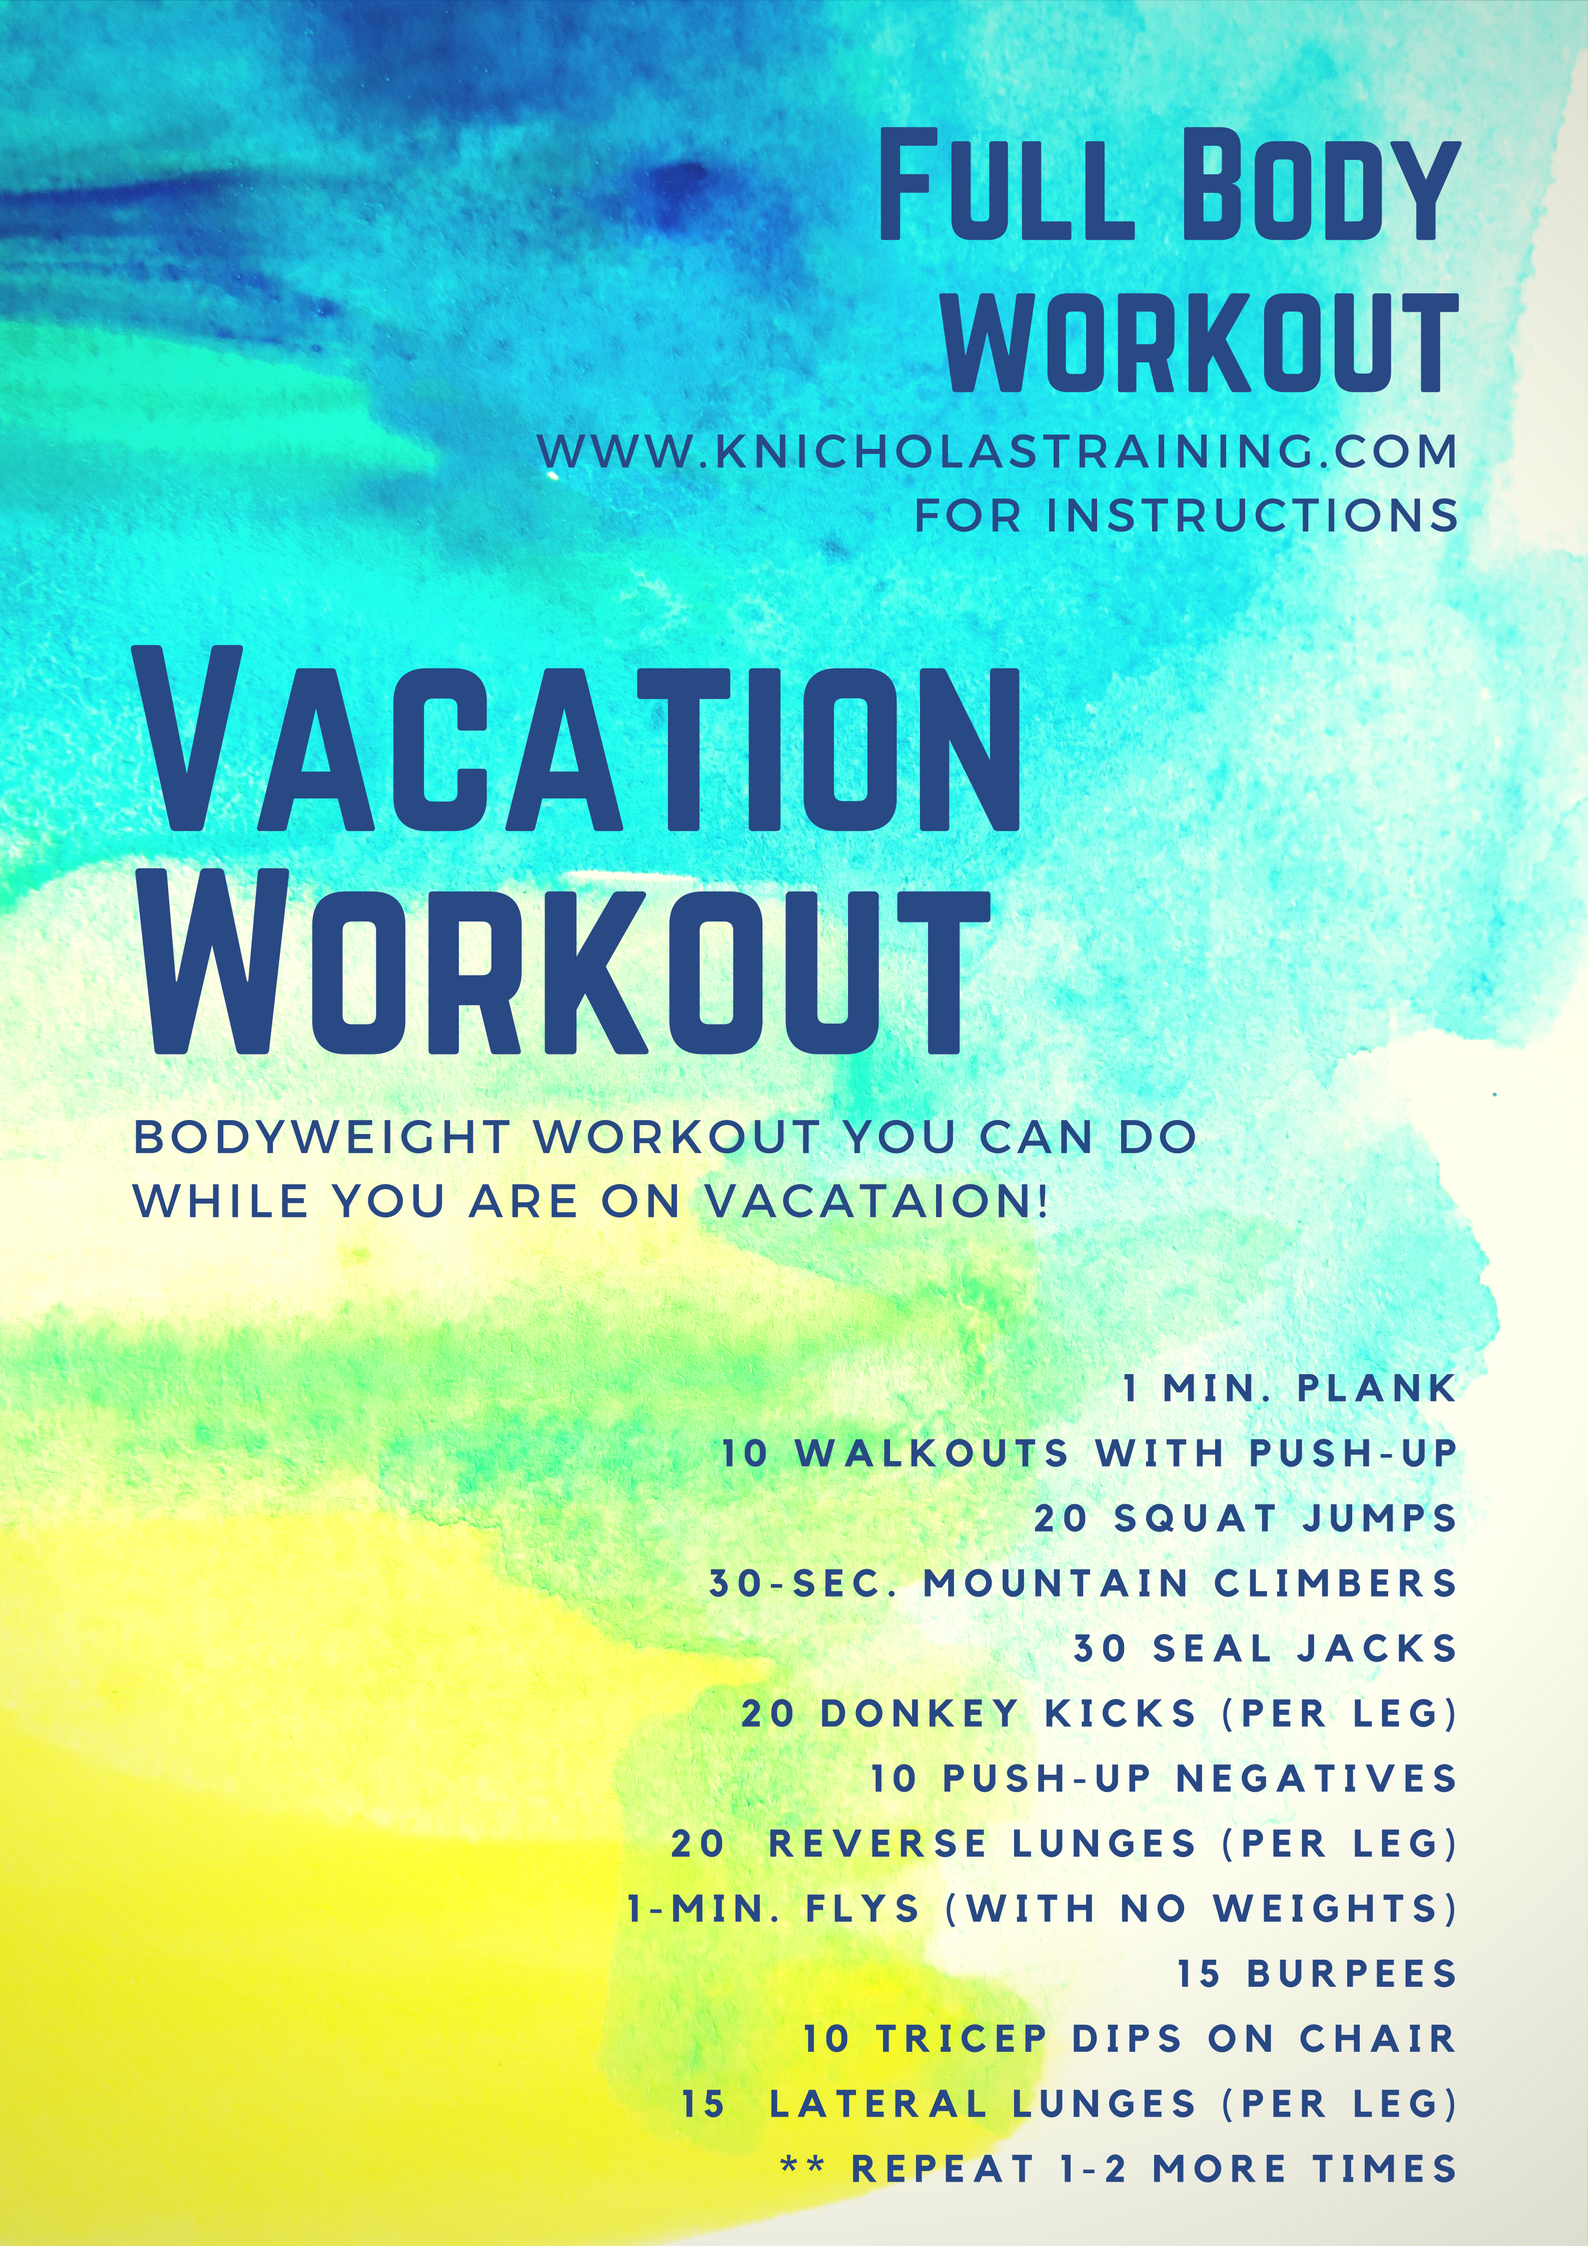 20-Minute Vacation Workout